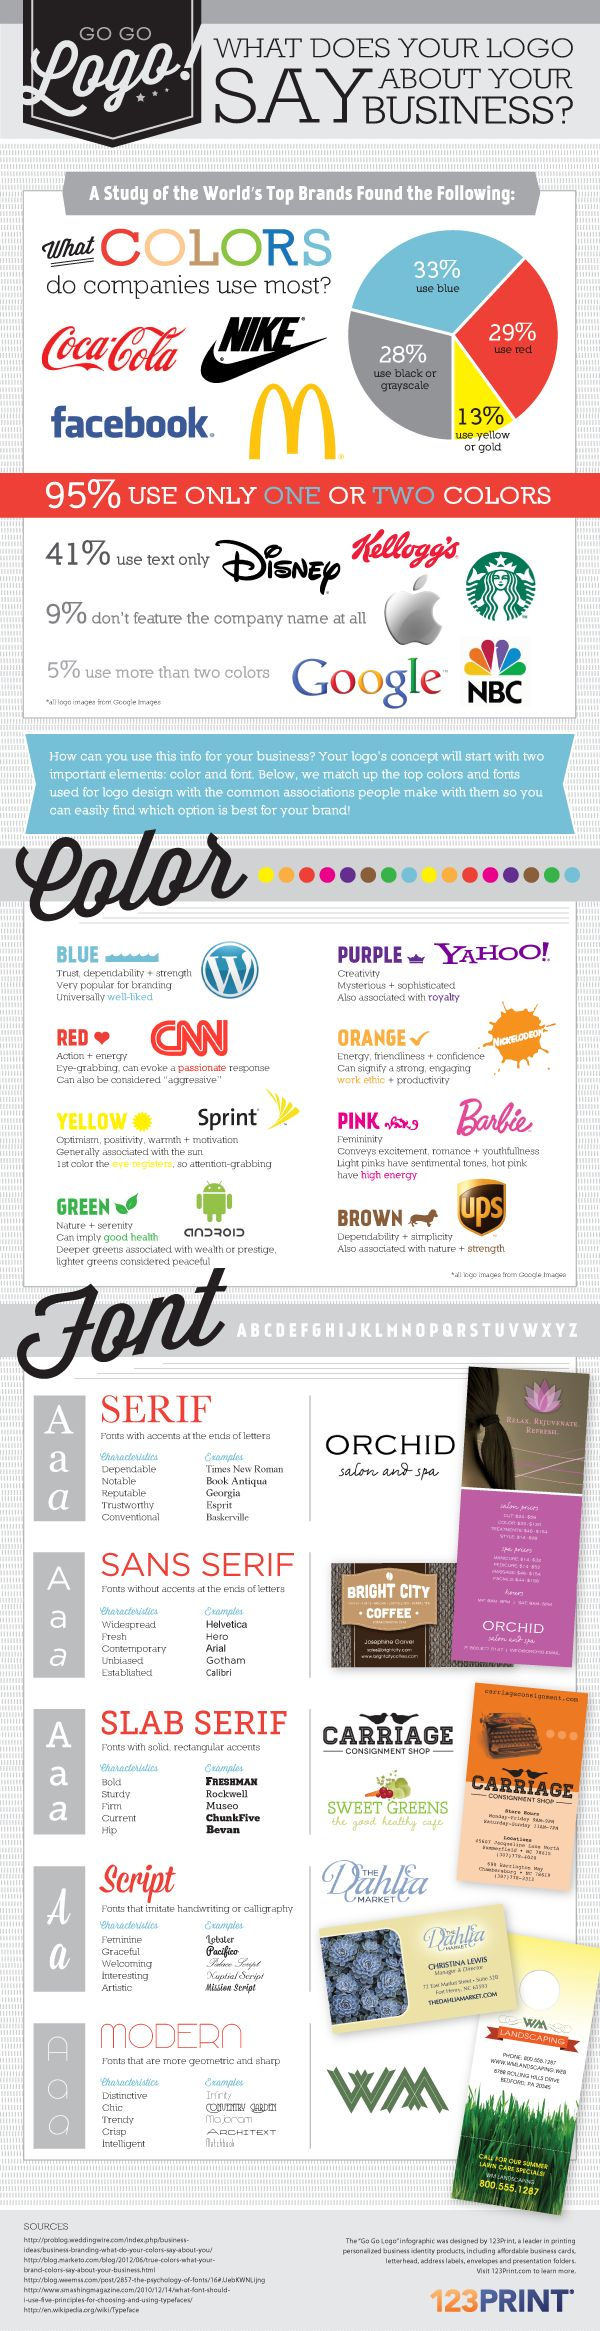 From 123 Print - infographic on designing the perfect company logo utilizing color and font.